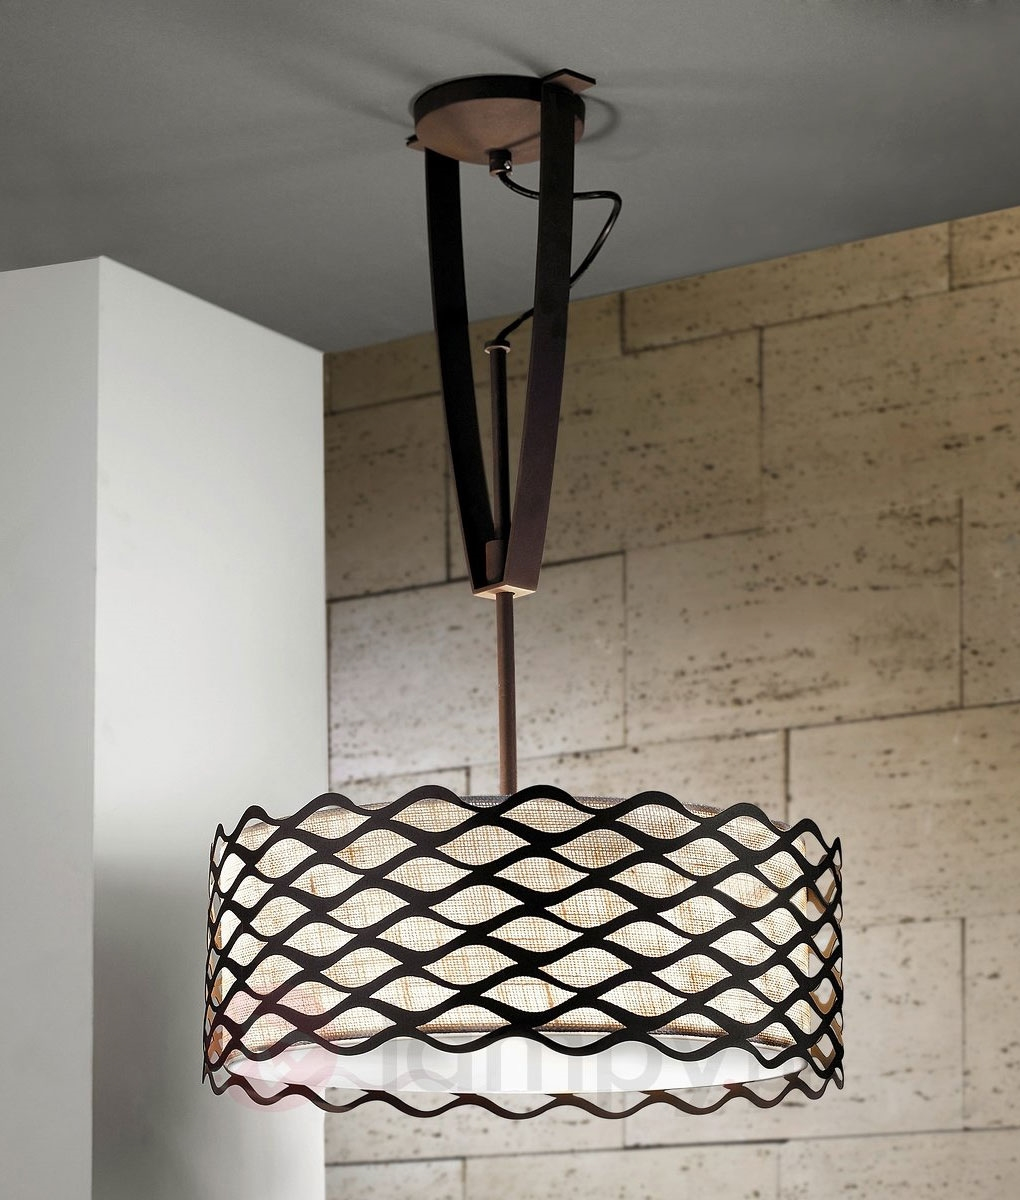 Height Adjustable Led Pendant Light Drop: Height Adjustable Ceiling Light With Woven Shade And